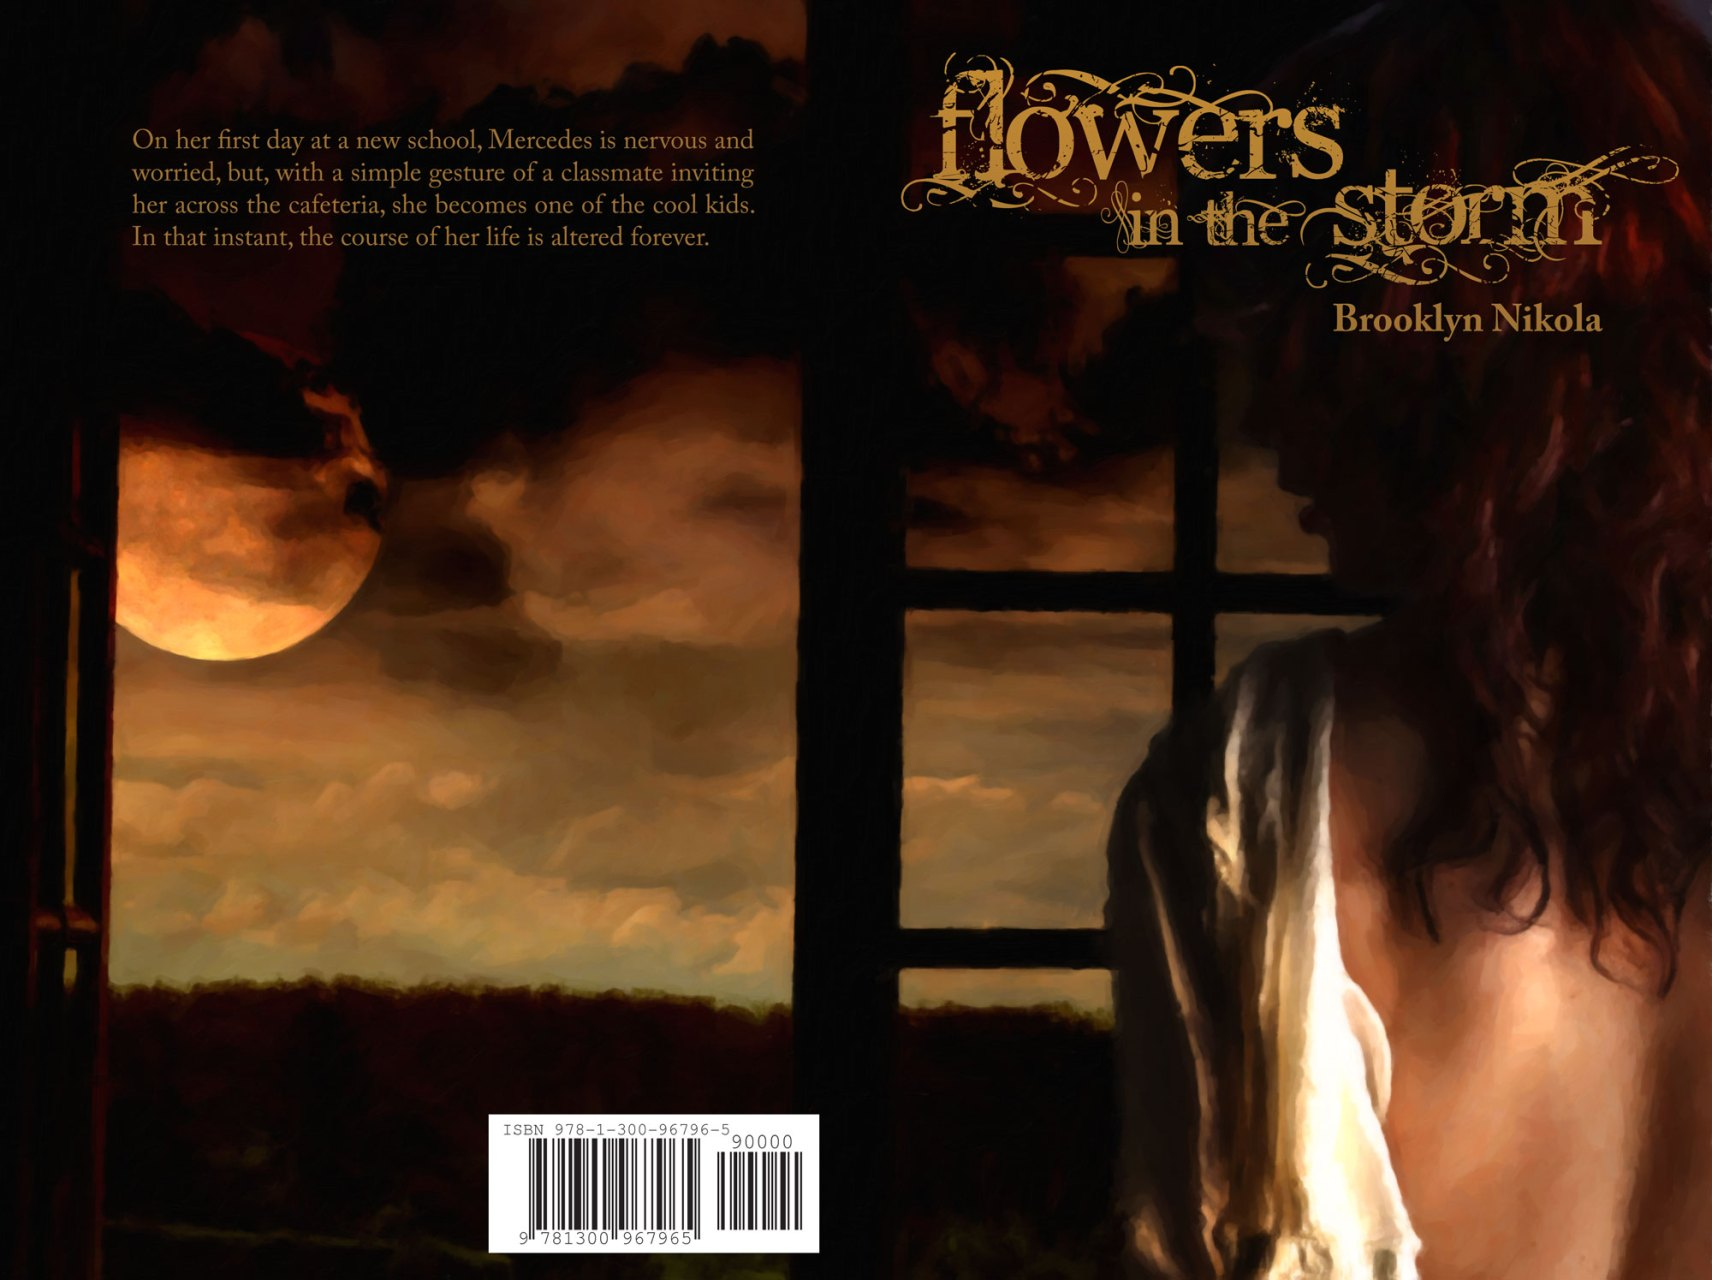 Flowers in the Storm Book Cover Design by E.C. Spillman